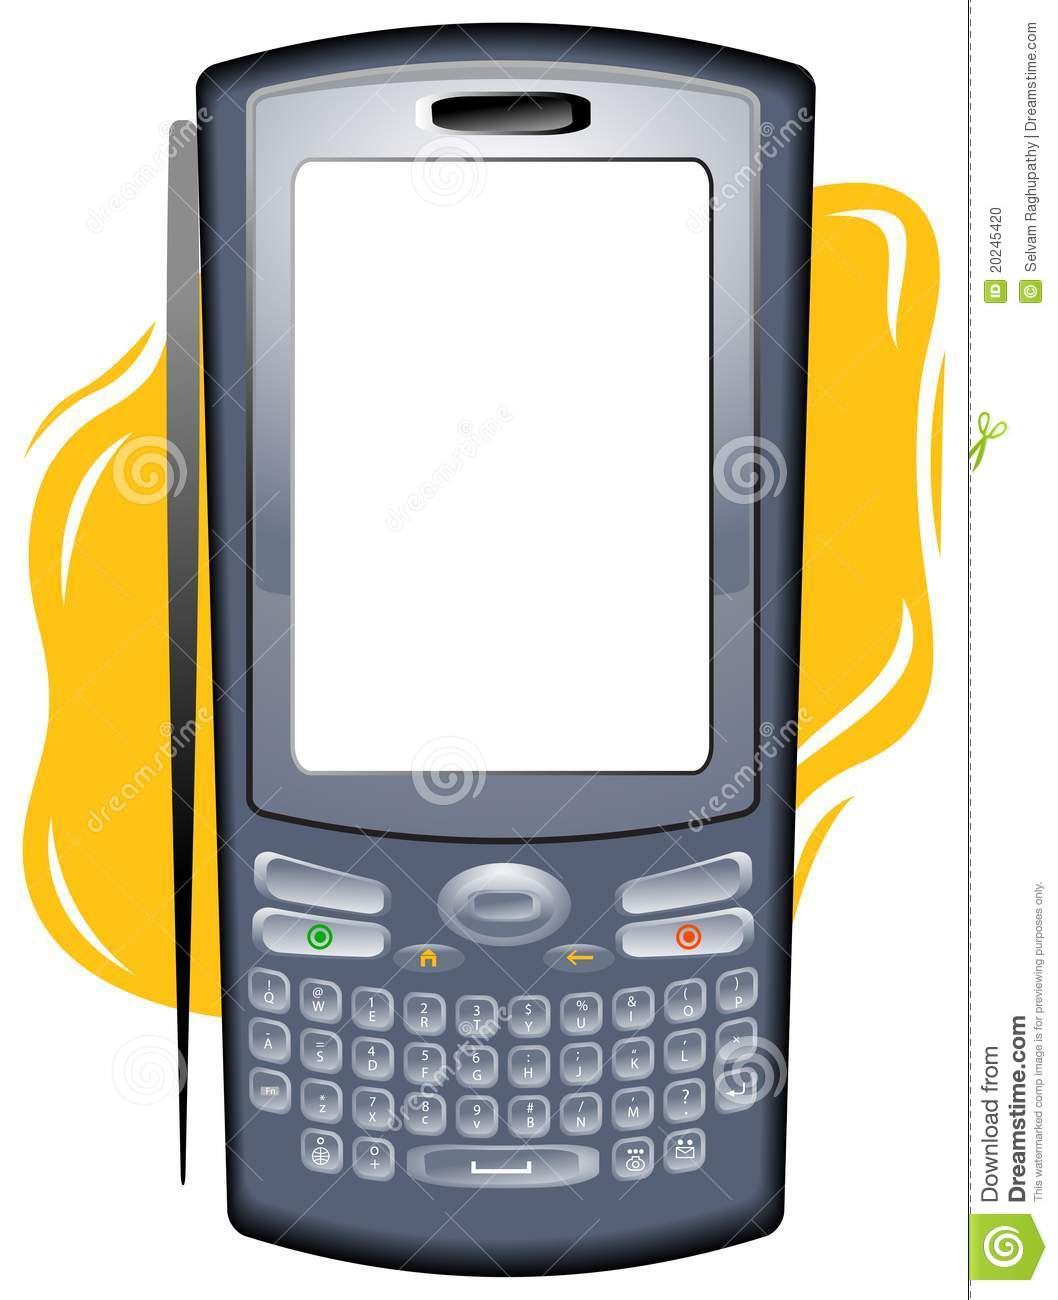 cell phone stock photo   image 20245420